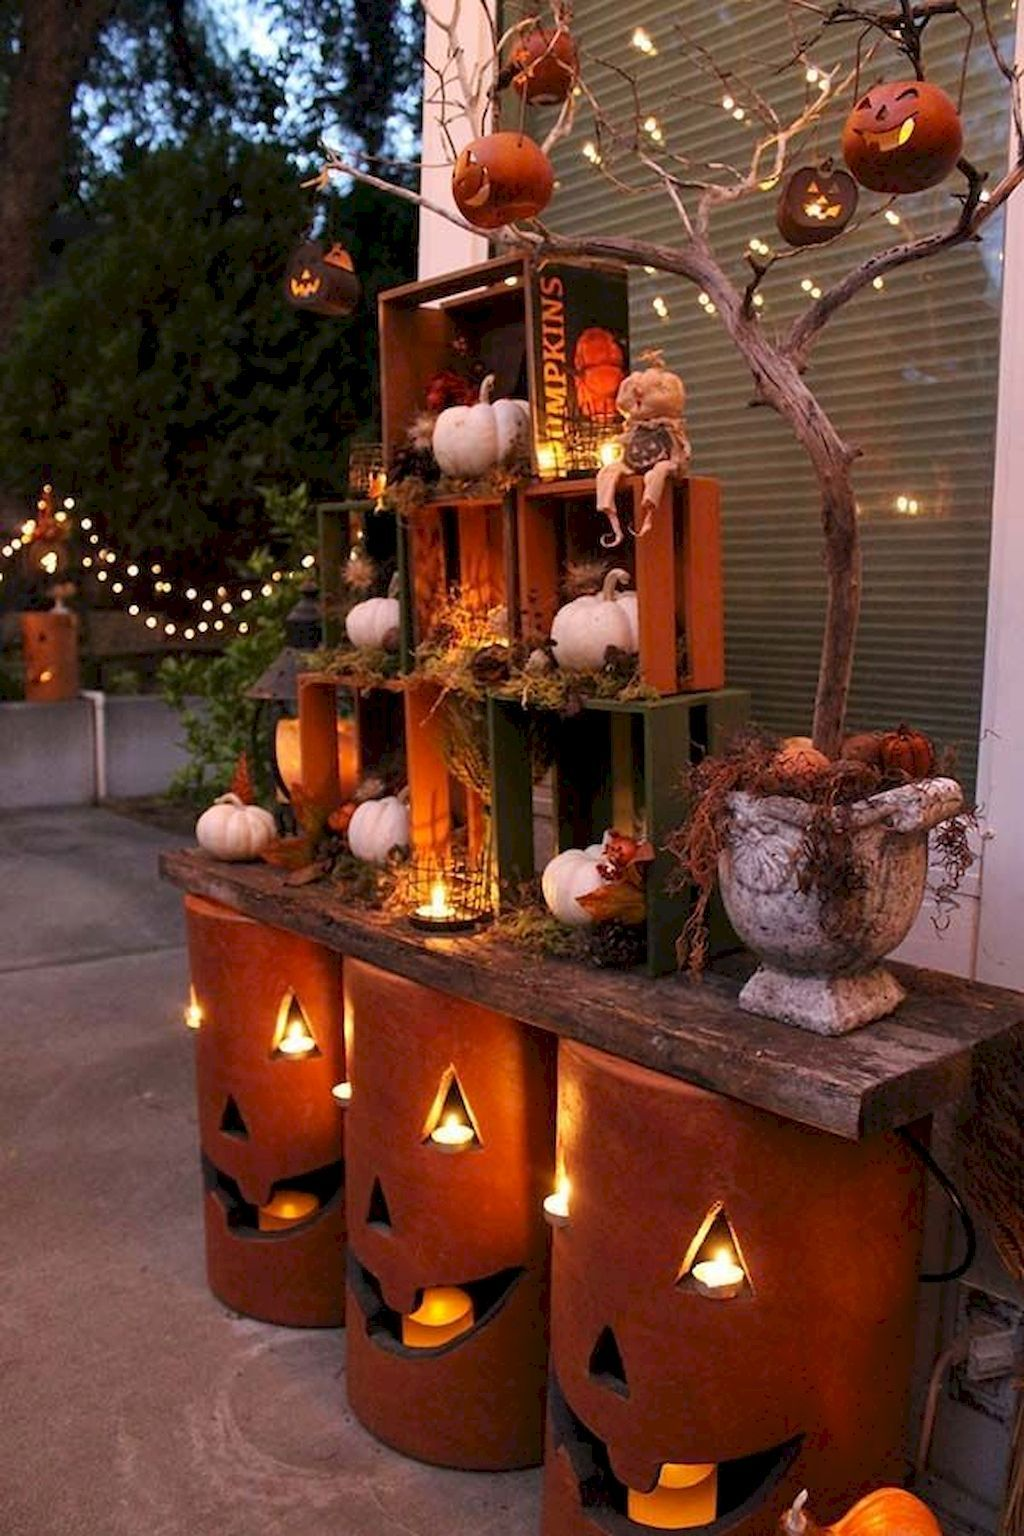 80 + CREEPY OUTDOOR HALLOWEEN DECORATION IDEAS Cel-ebration - Pinterest Outdoor Halloween Decorations